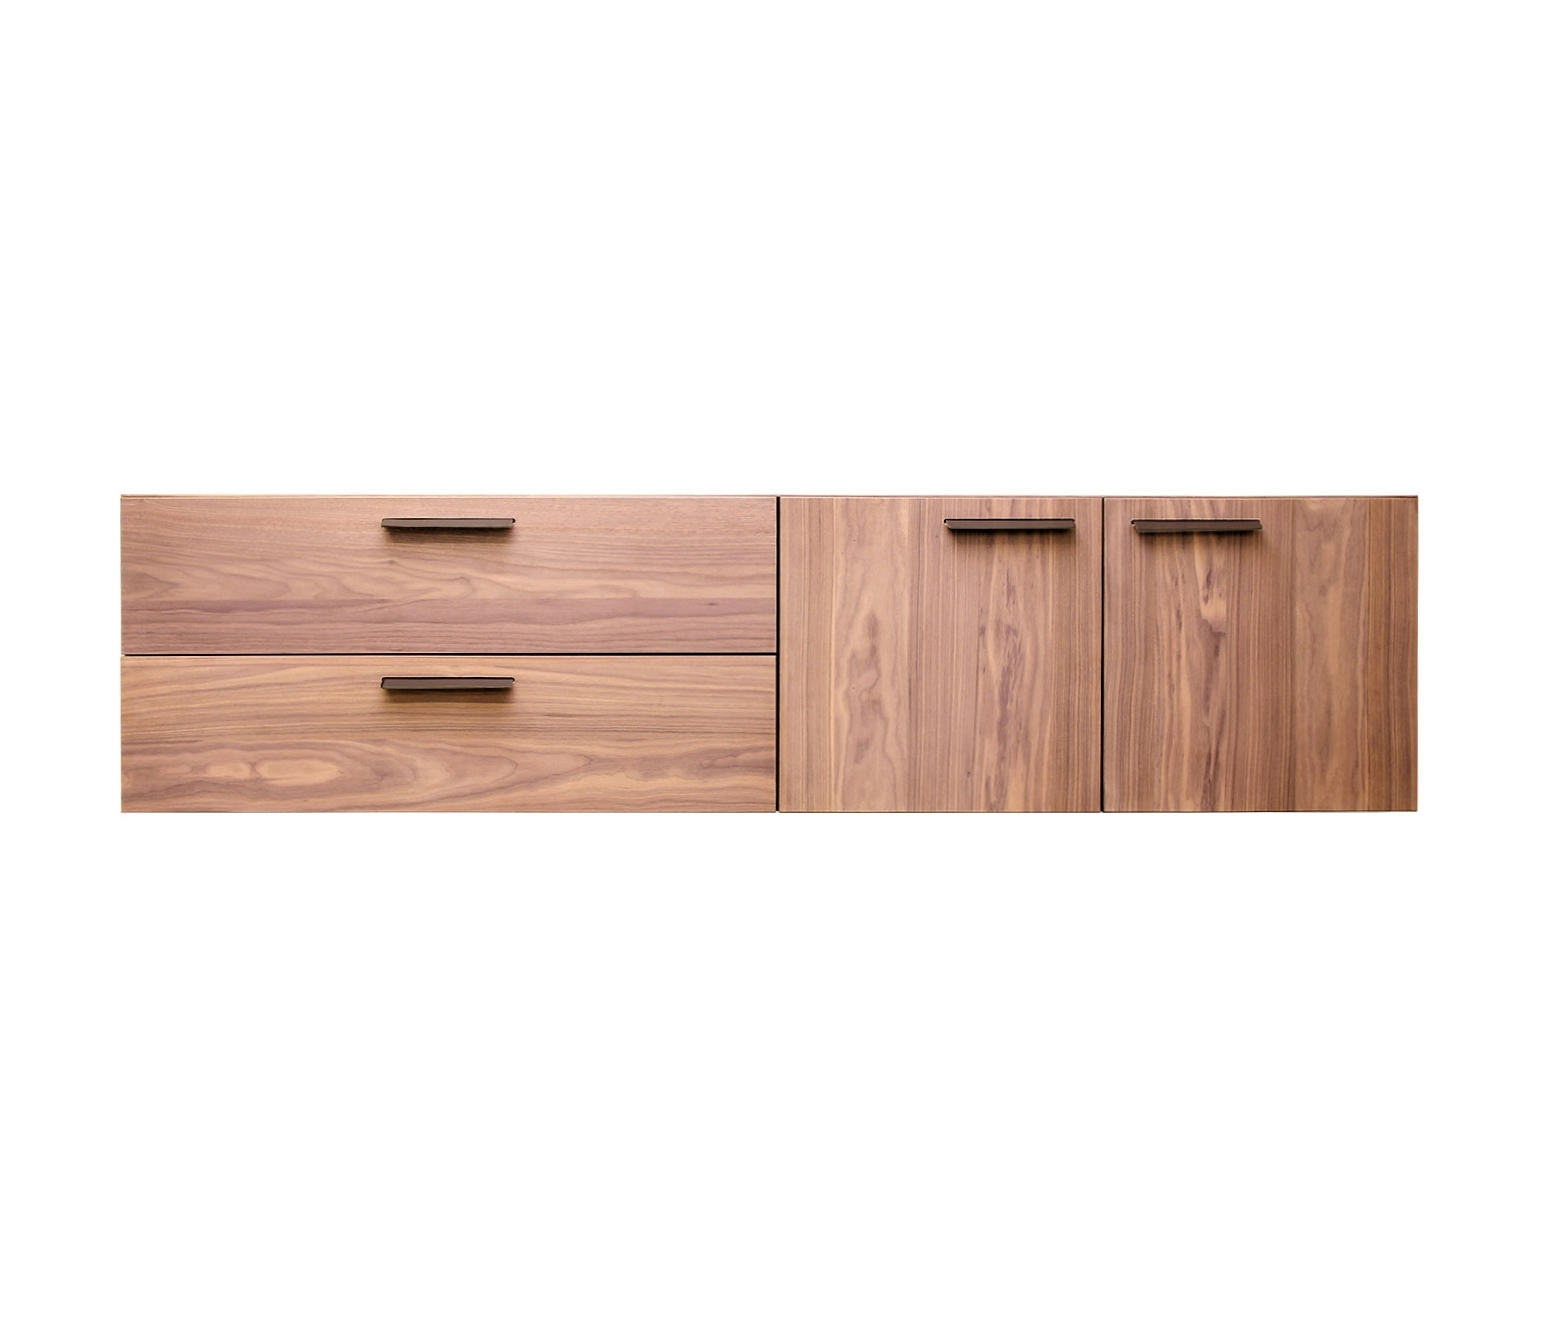 Shale 2 Door - 2 Drawer Wall-Mounted Cabinet - Sideboards From Blu in Walnut Finish 2-Door/3-Drawer Sideboards (Image 22 of 30)